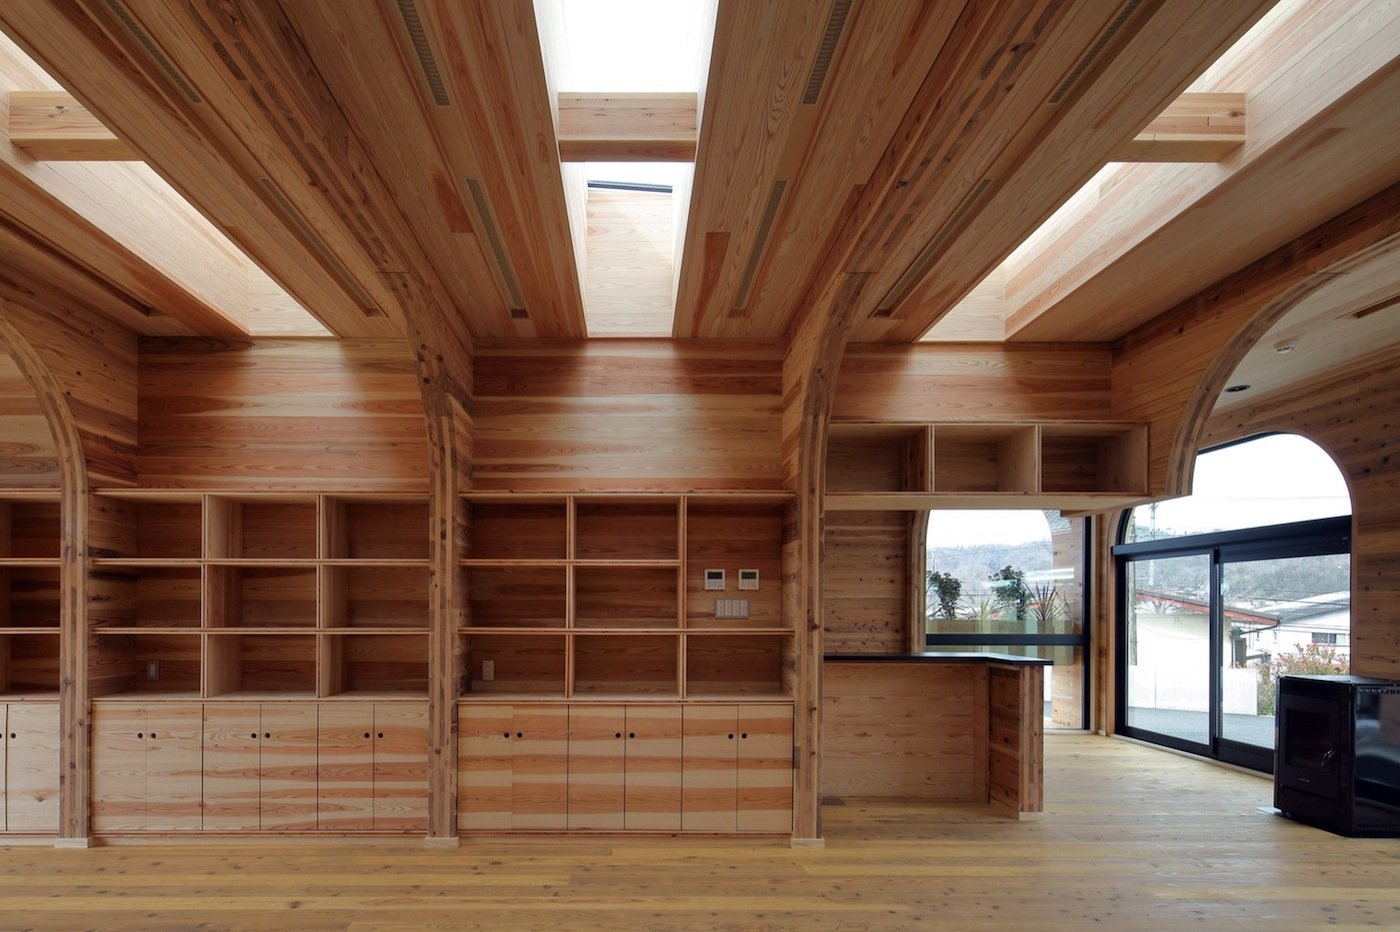 Skylights in timber ceiling